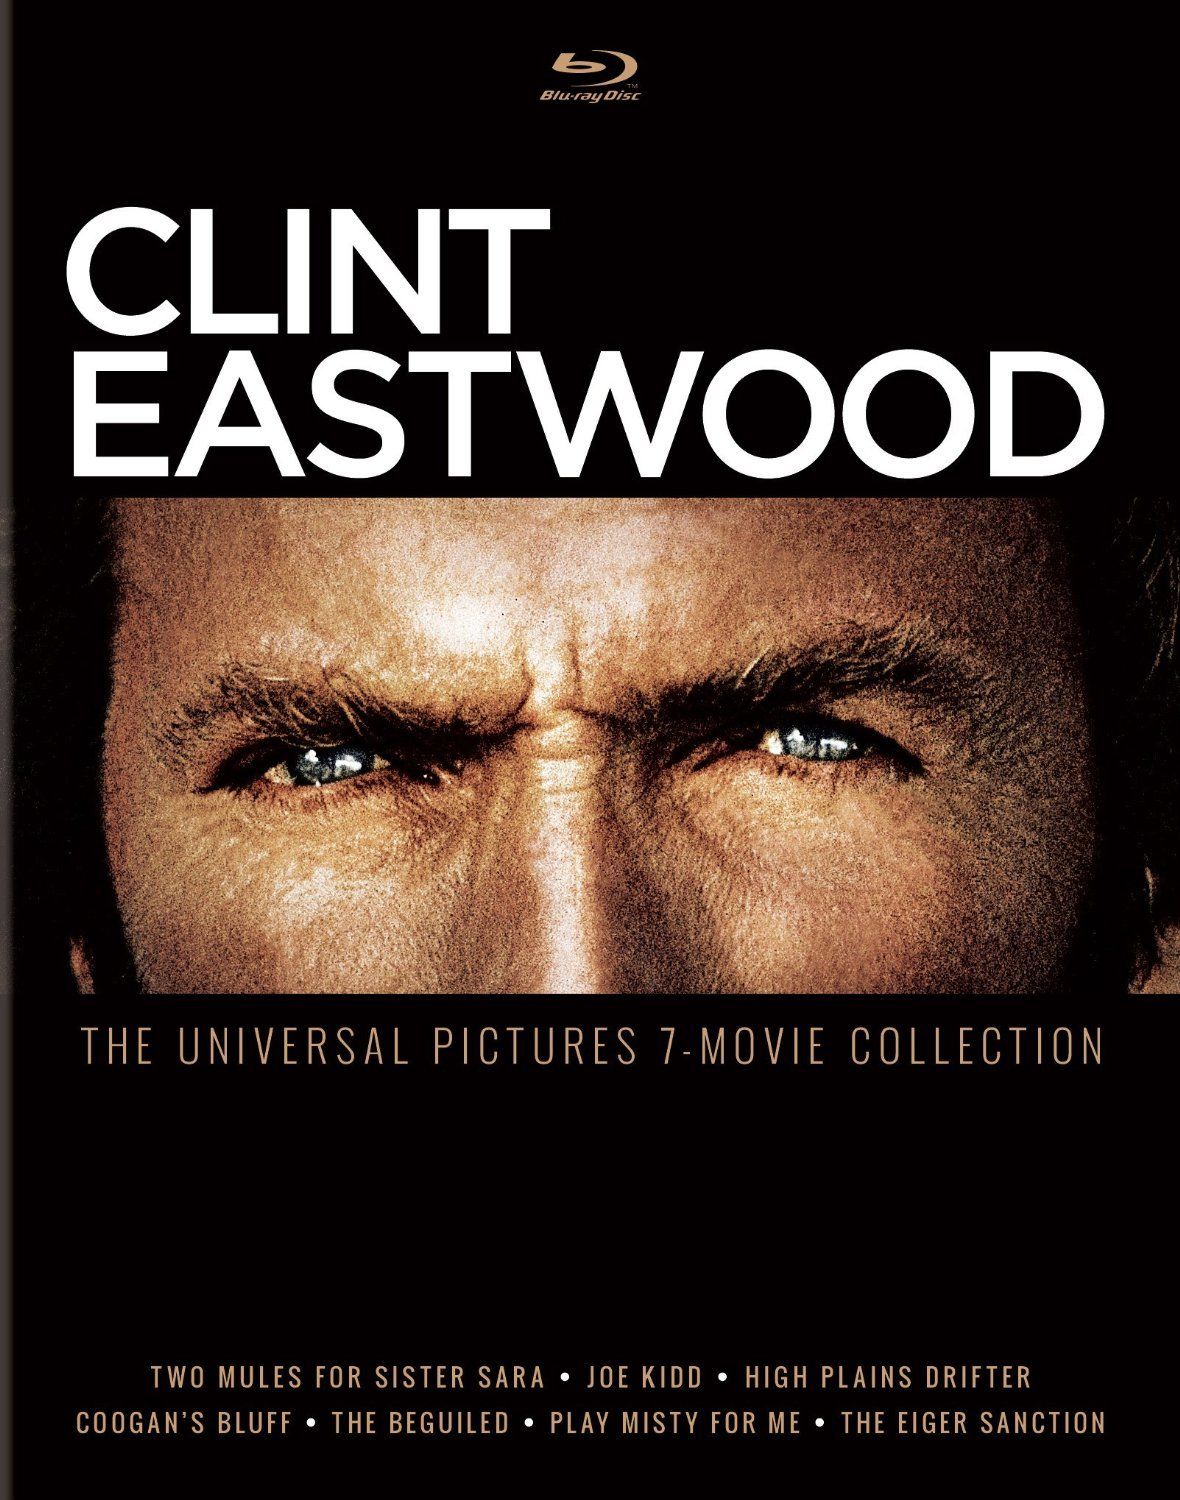 Clint Eastwood: The Universal Pictures 7-Movie Collection (1968-1975) Blu-ray